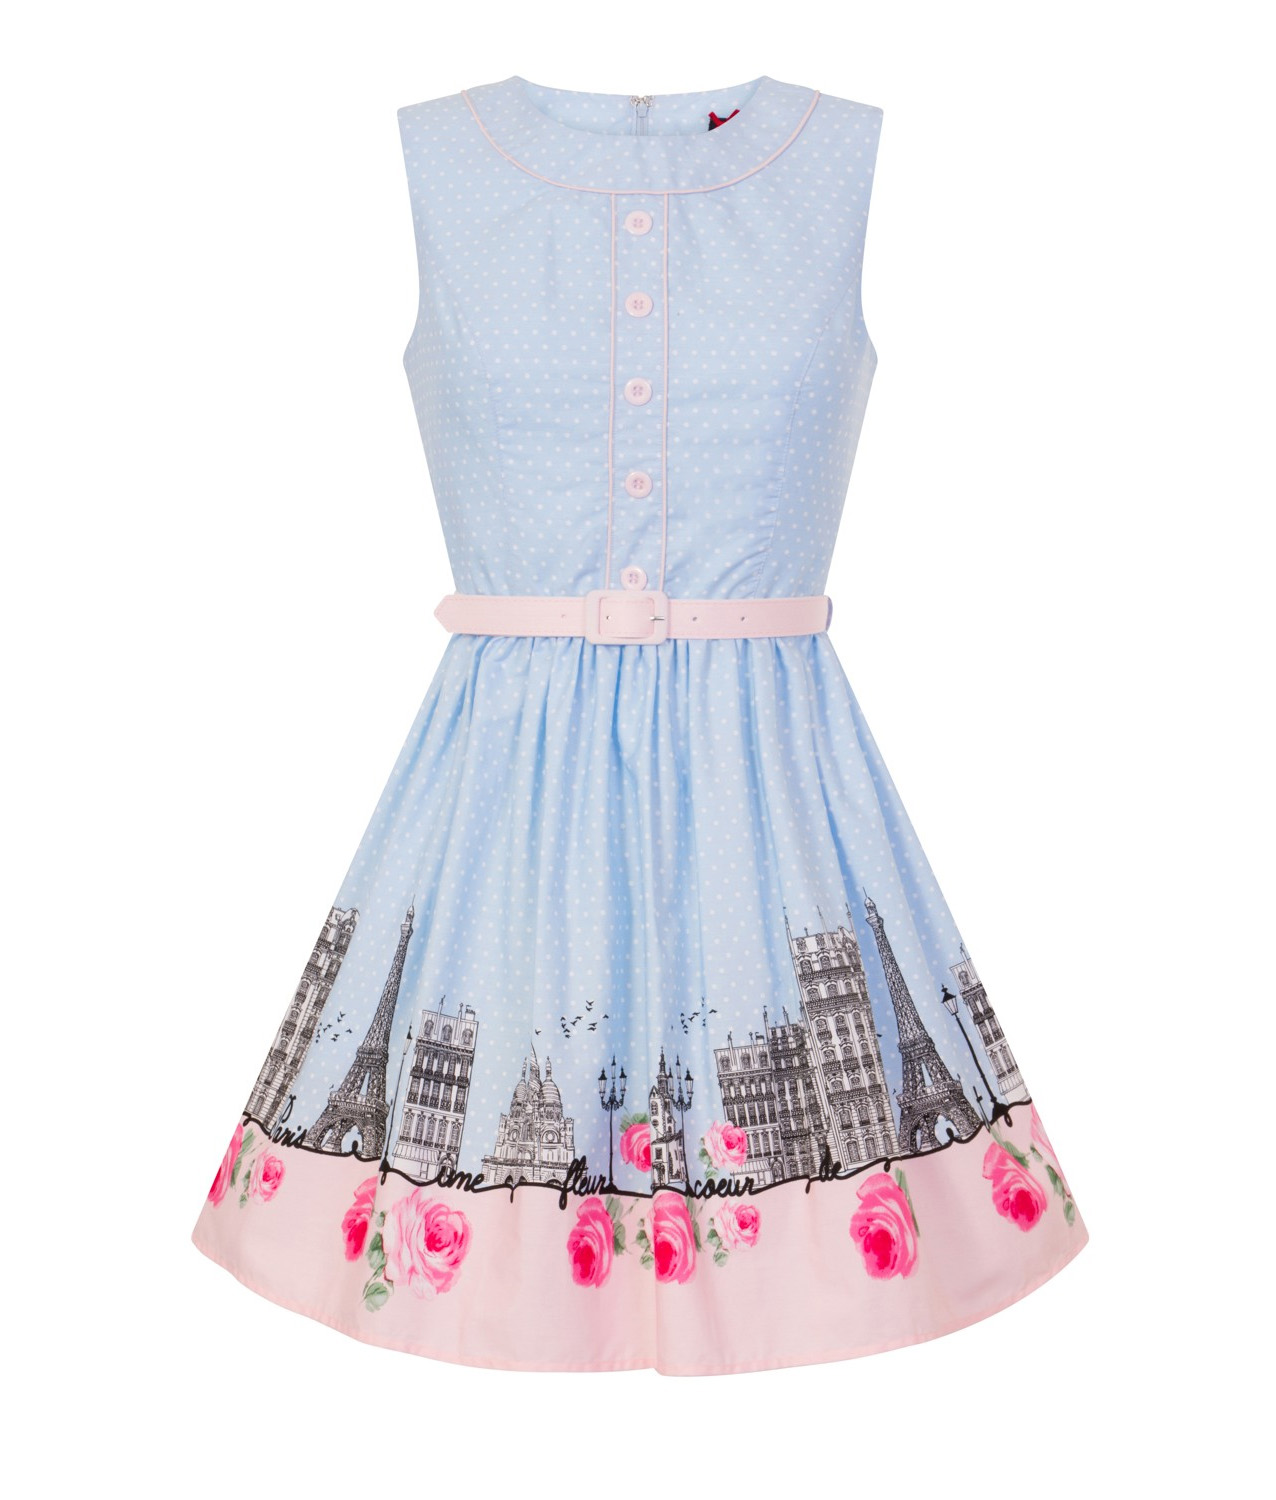 Hell-Bunny-50s-Vintage-Blue-Polka-Dot-PANAME-Mini-Dress-Paris-All-Sizes thumbnail 17